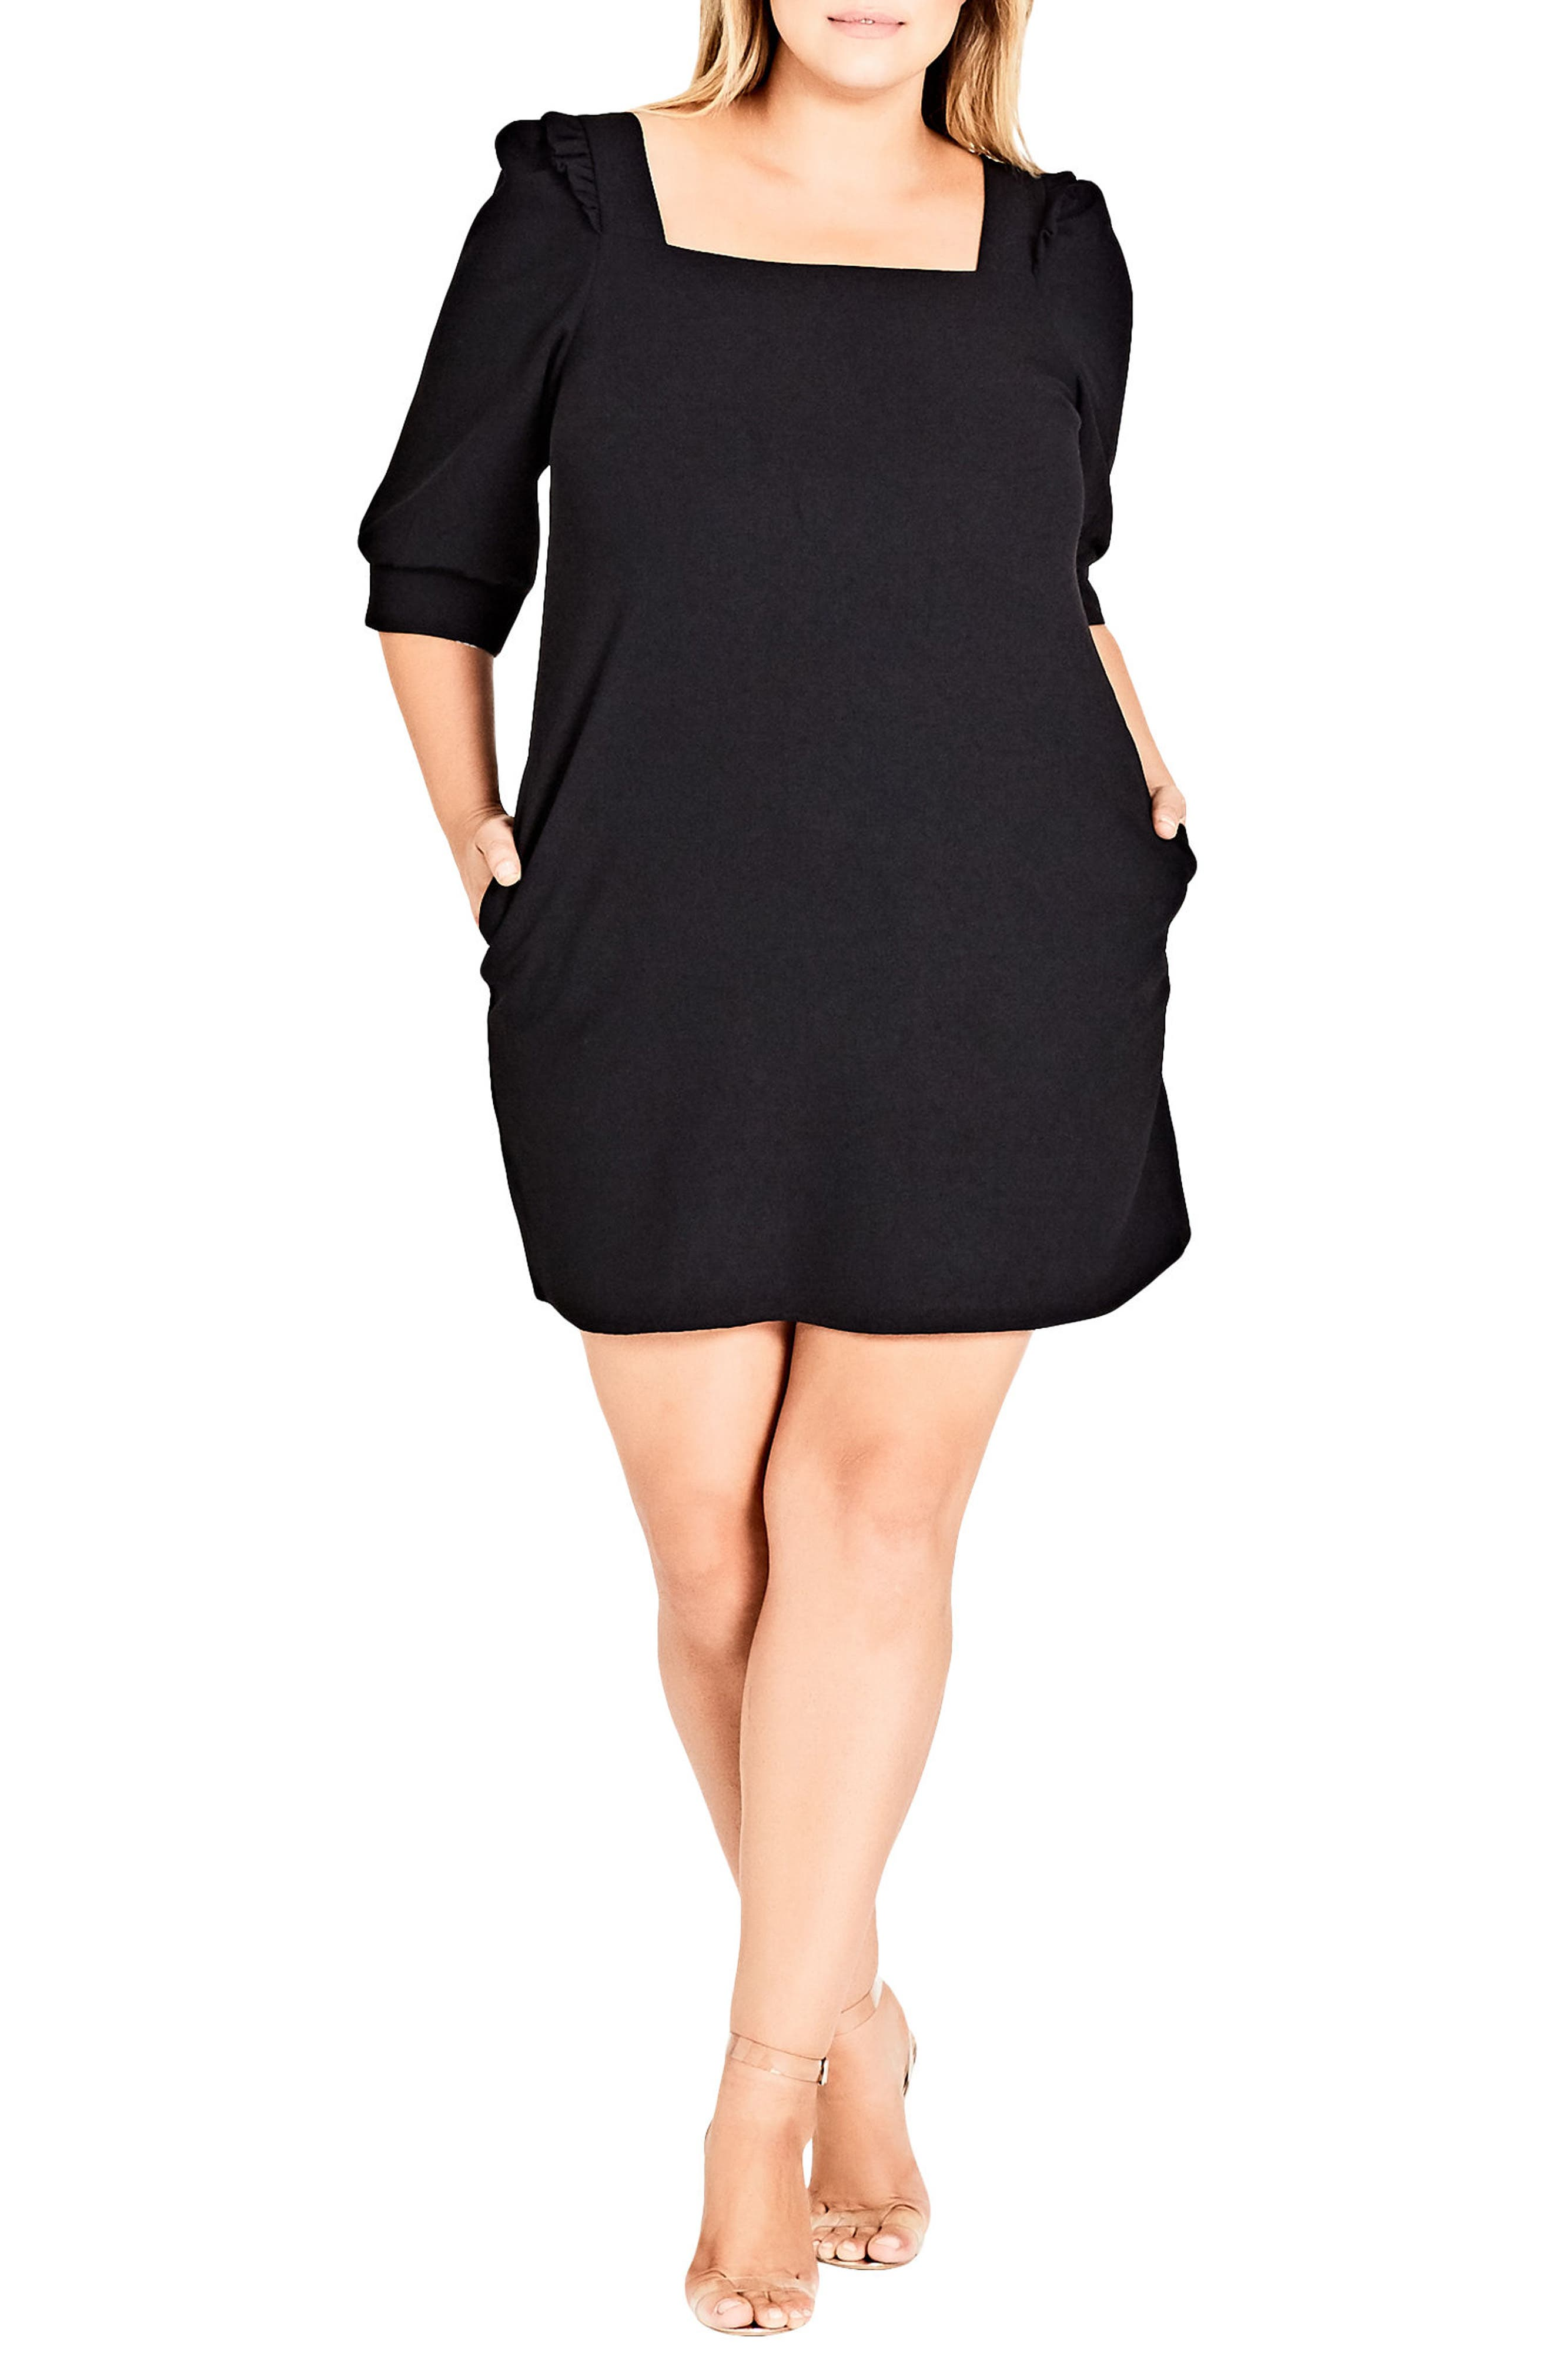 Darling Square Neck Dress,                             Main thumbnail 1, color,                             Black